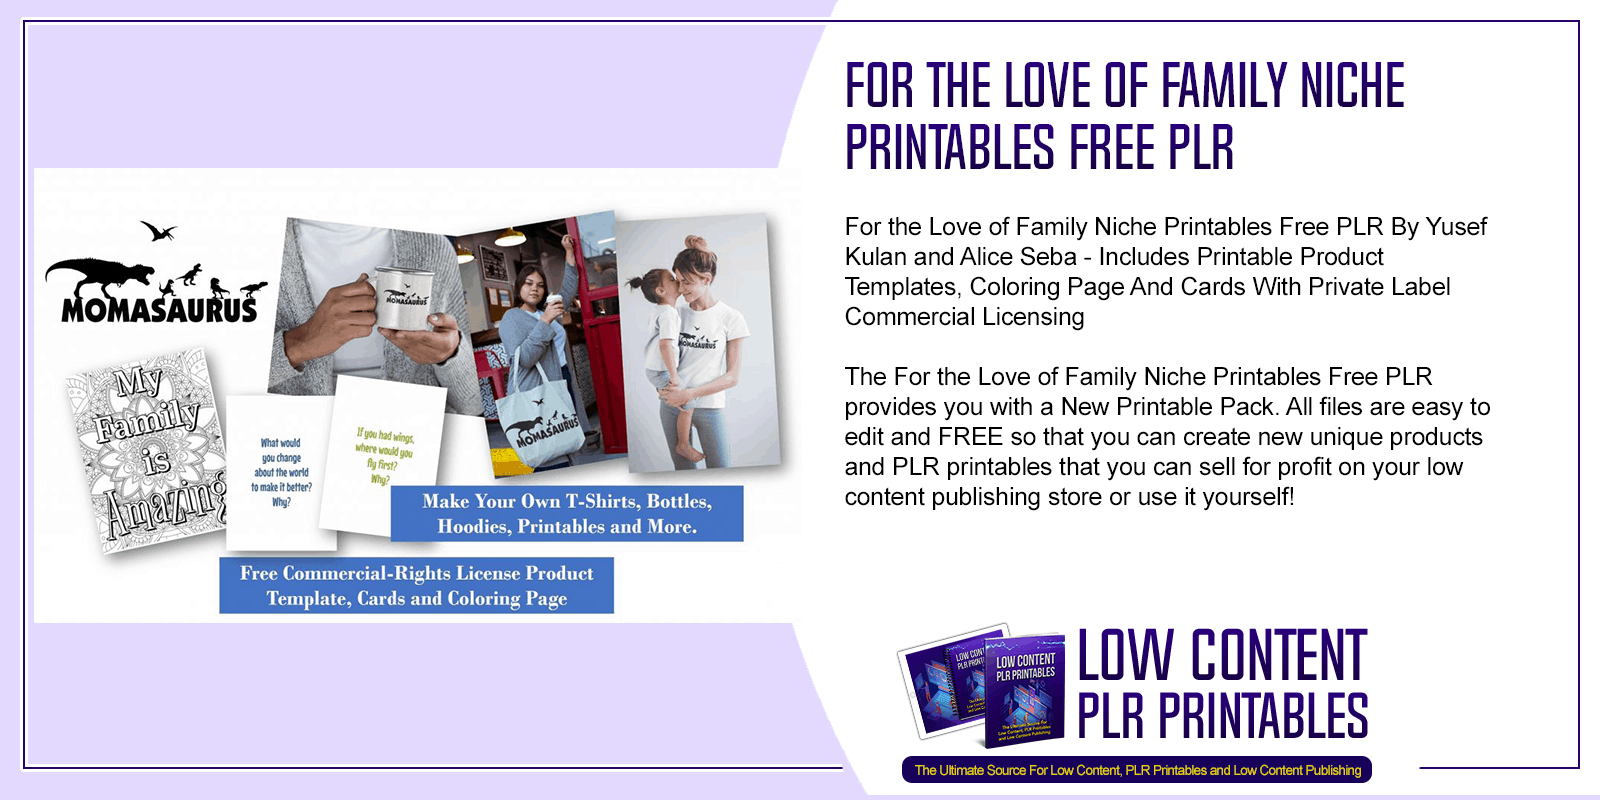 For the Love of Family Niche Printables Free PLR